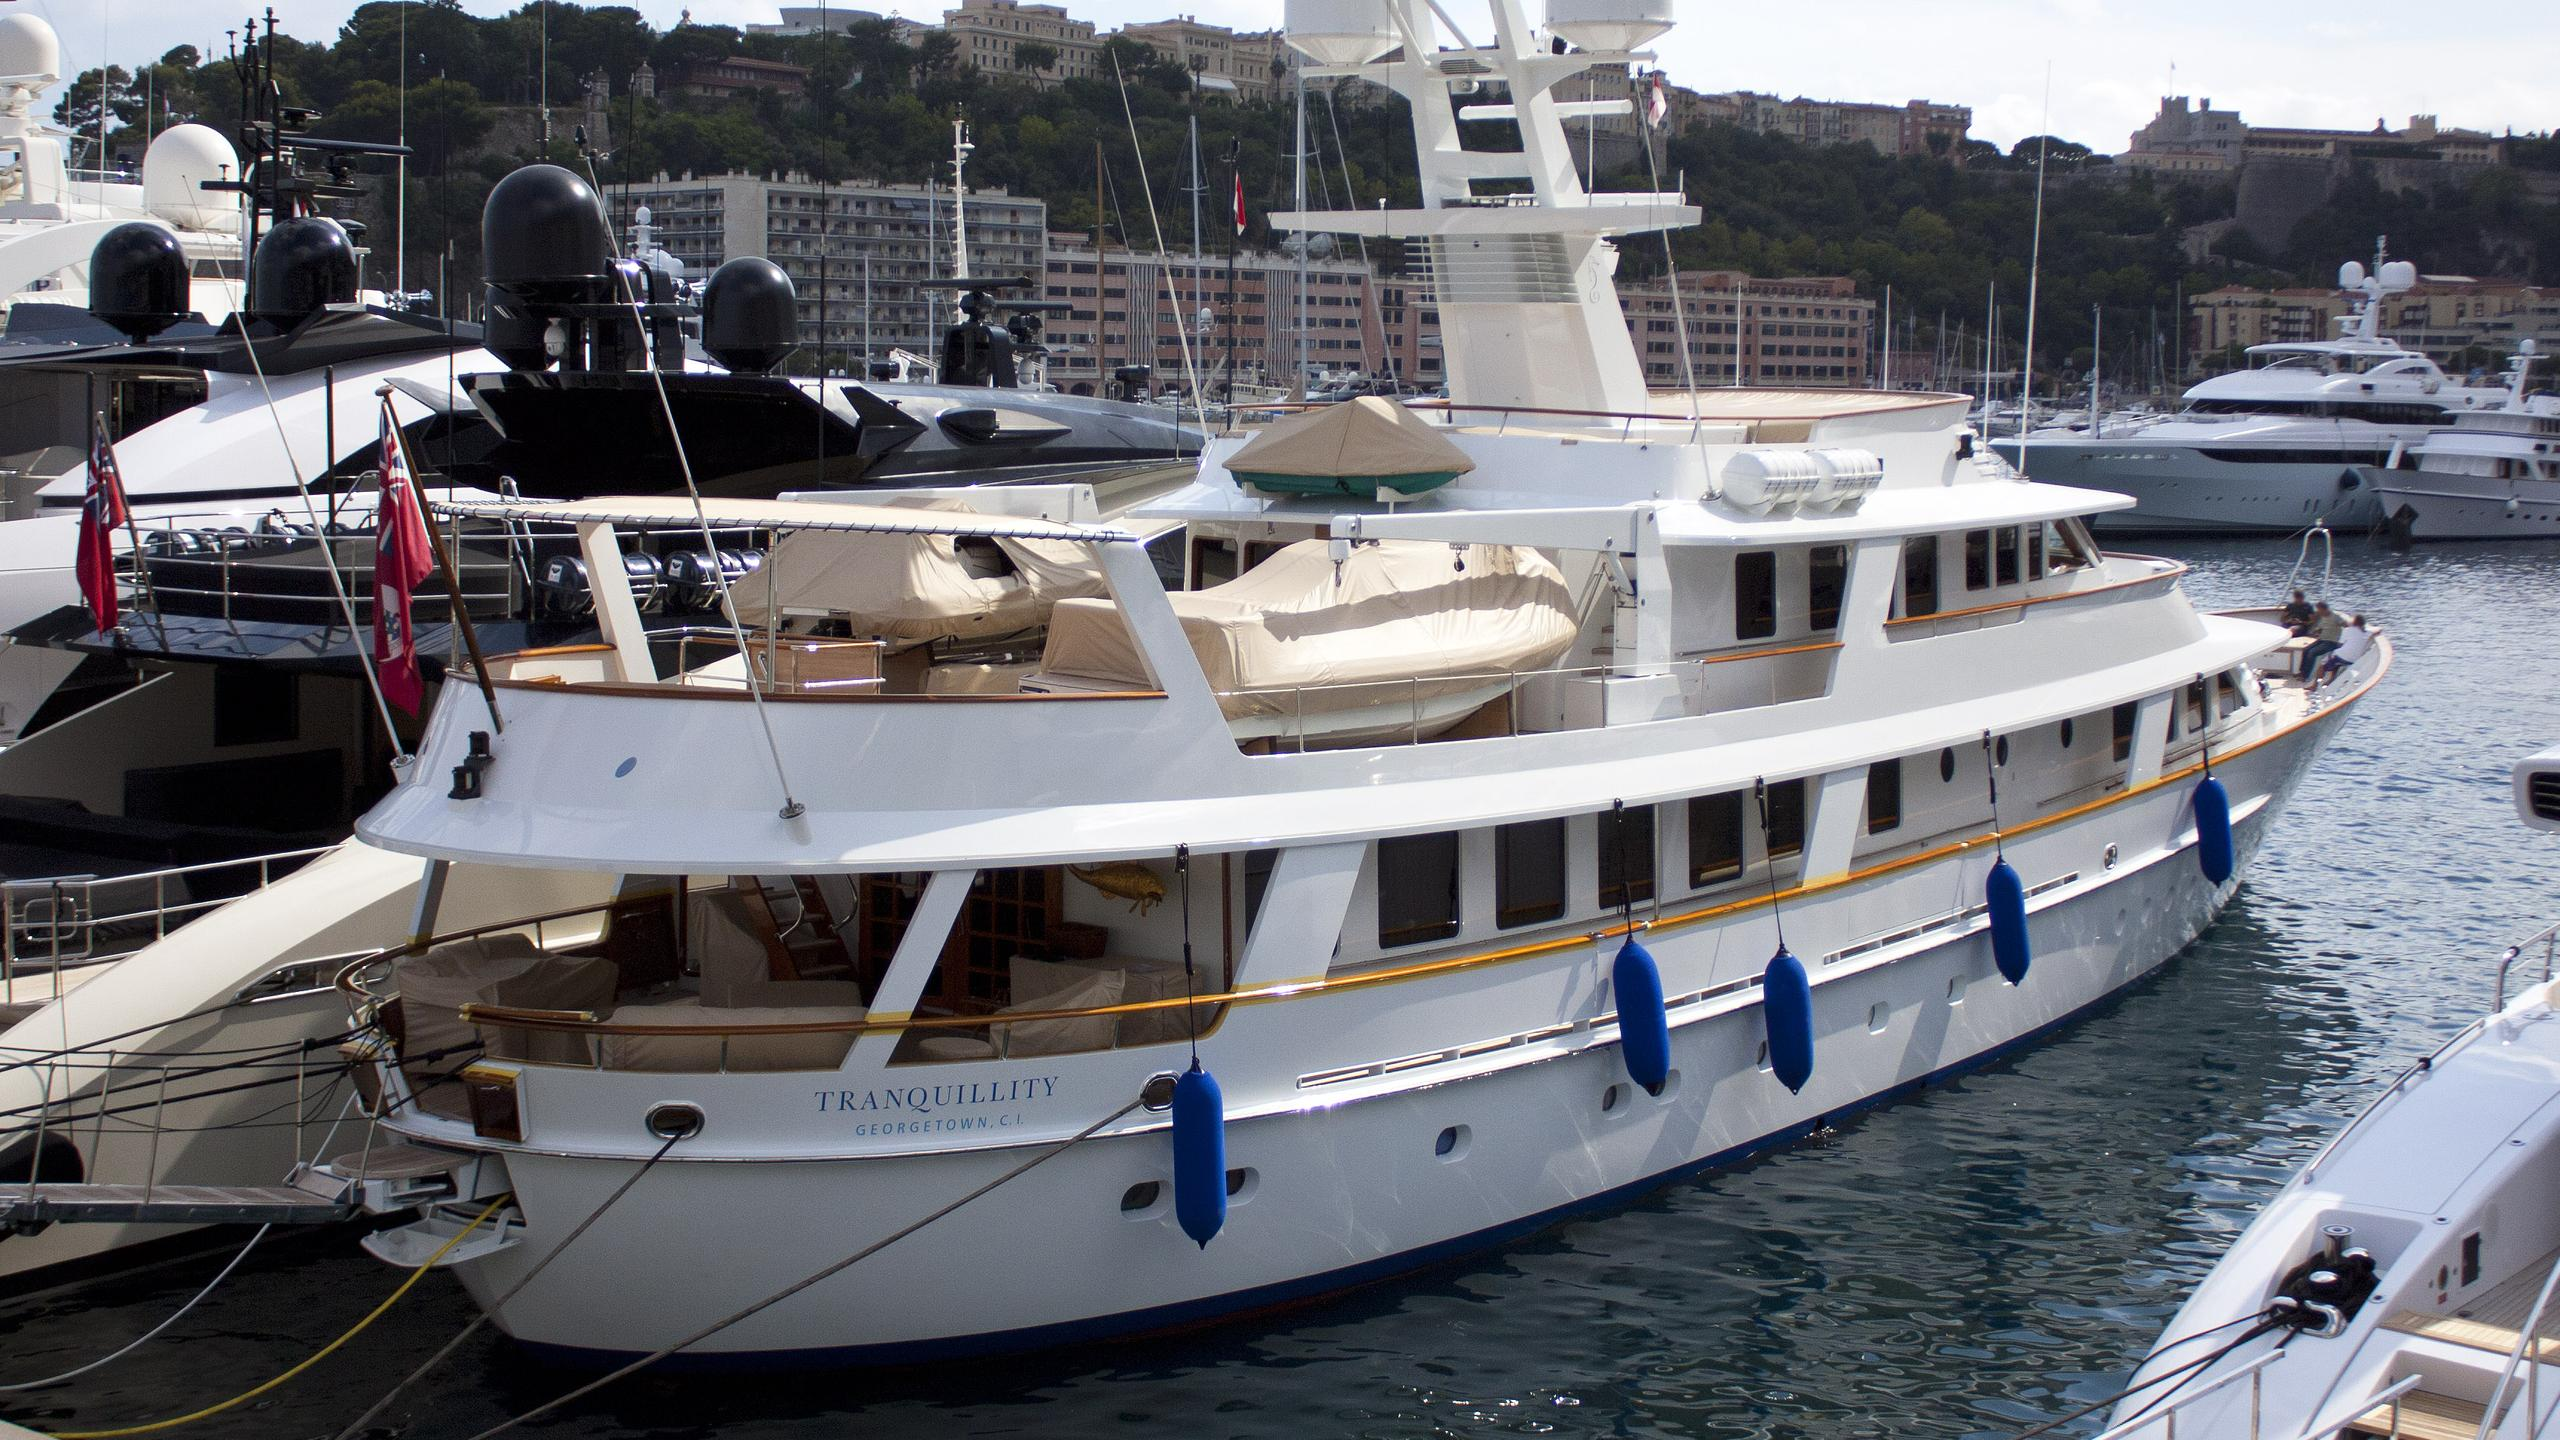 tranquillity-motor-yacht-amels-1984-42m-moored-half-stern